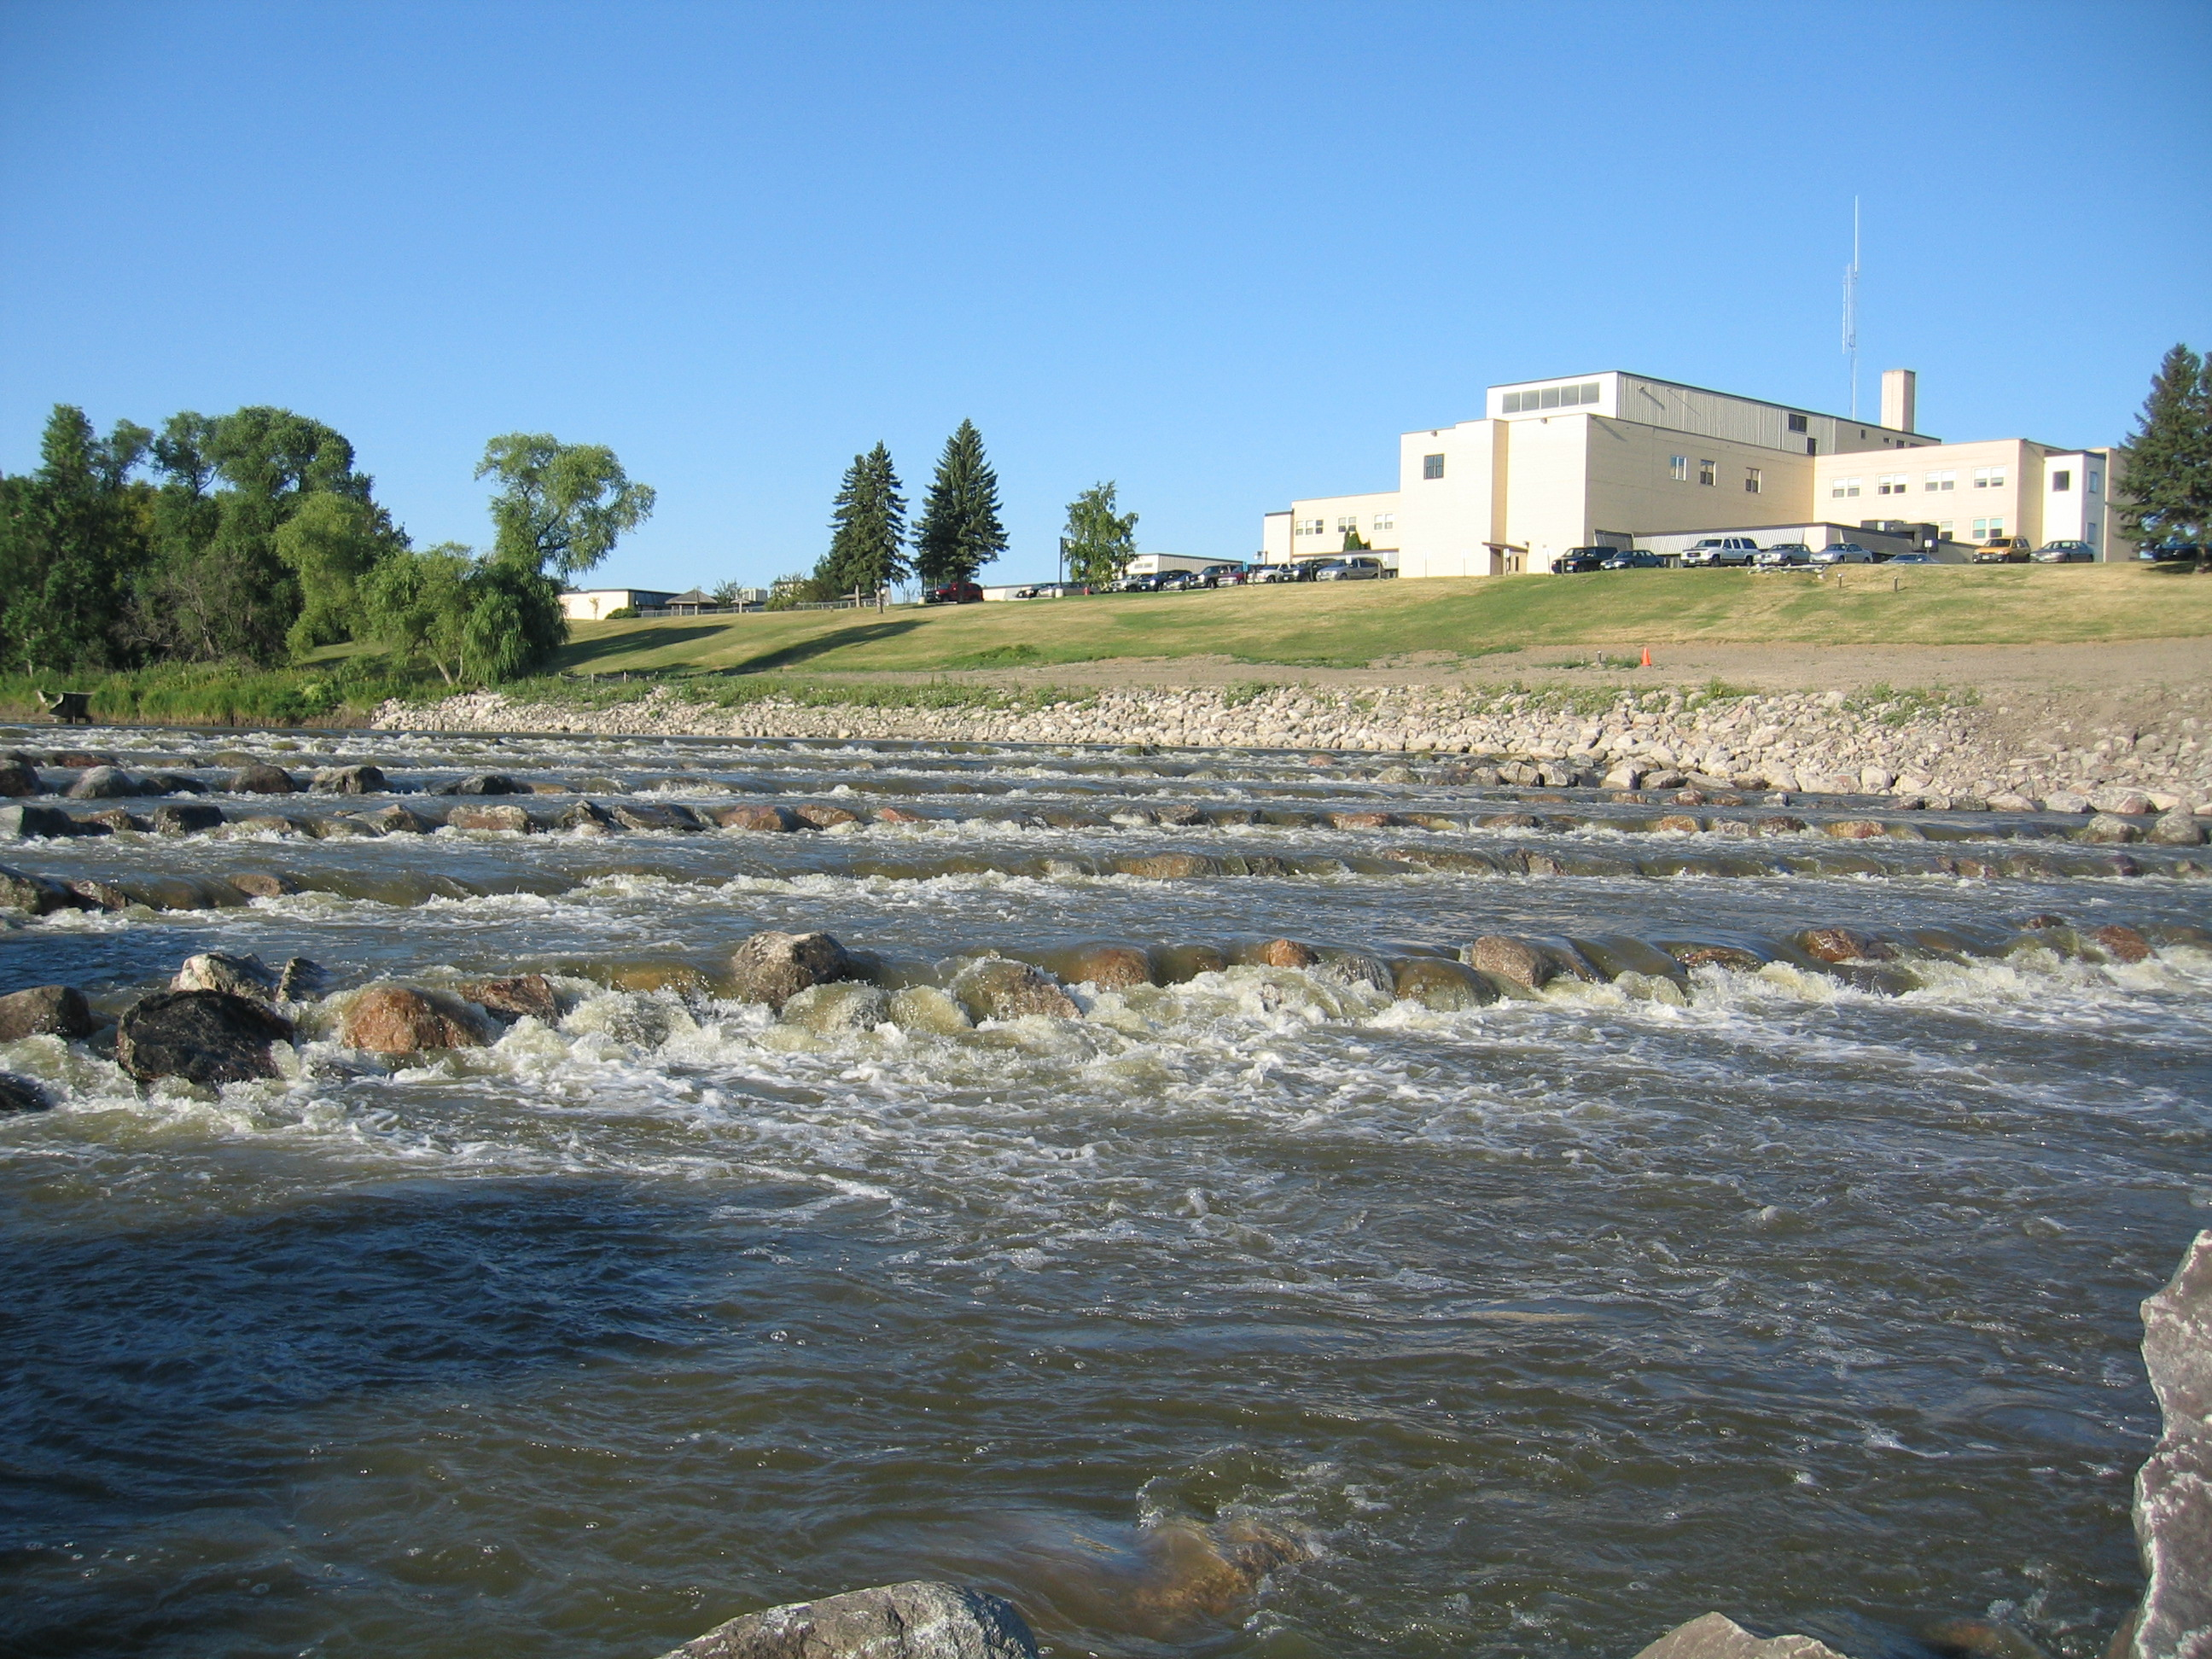 photo: Newly created rapids in East Grand Forks